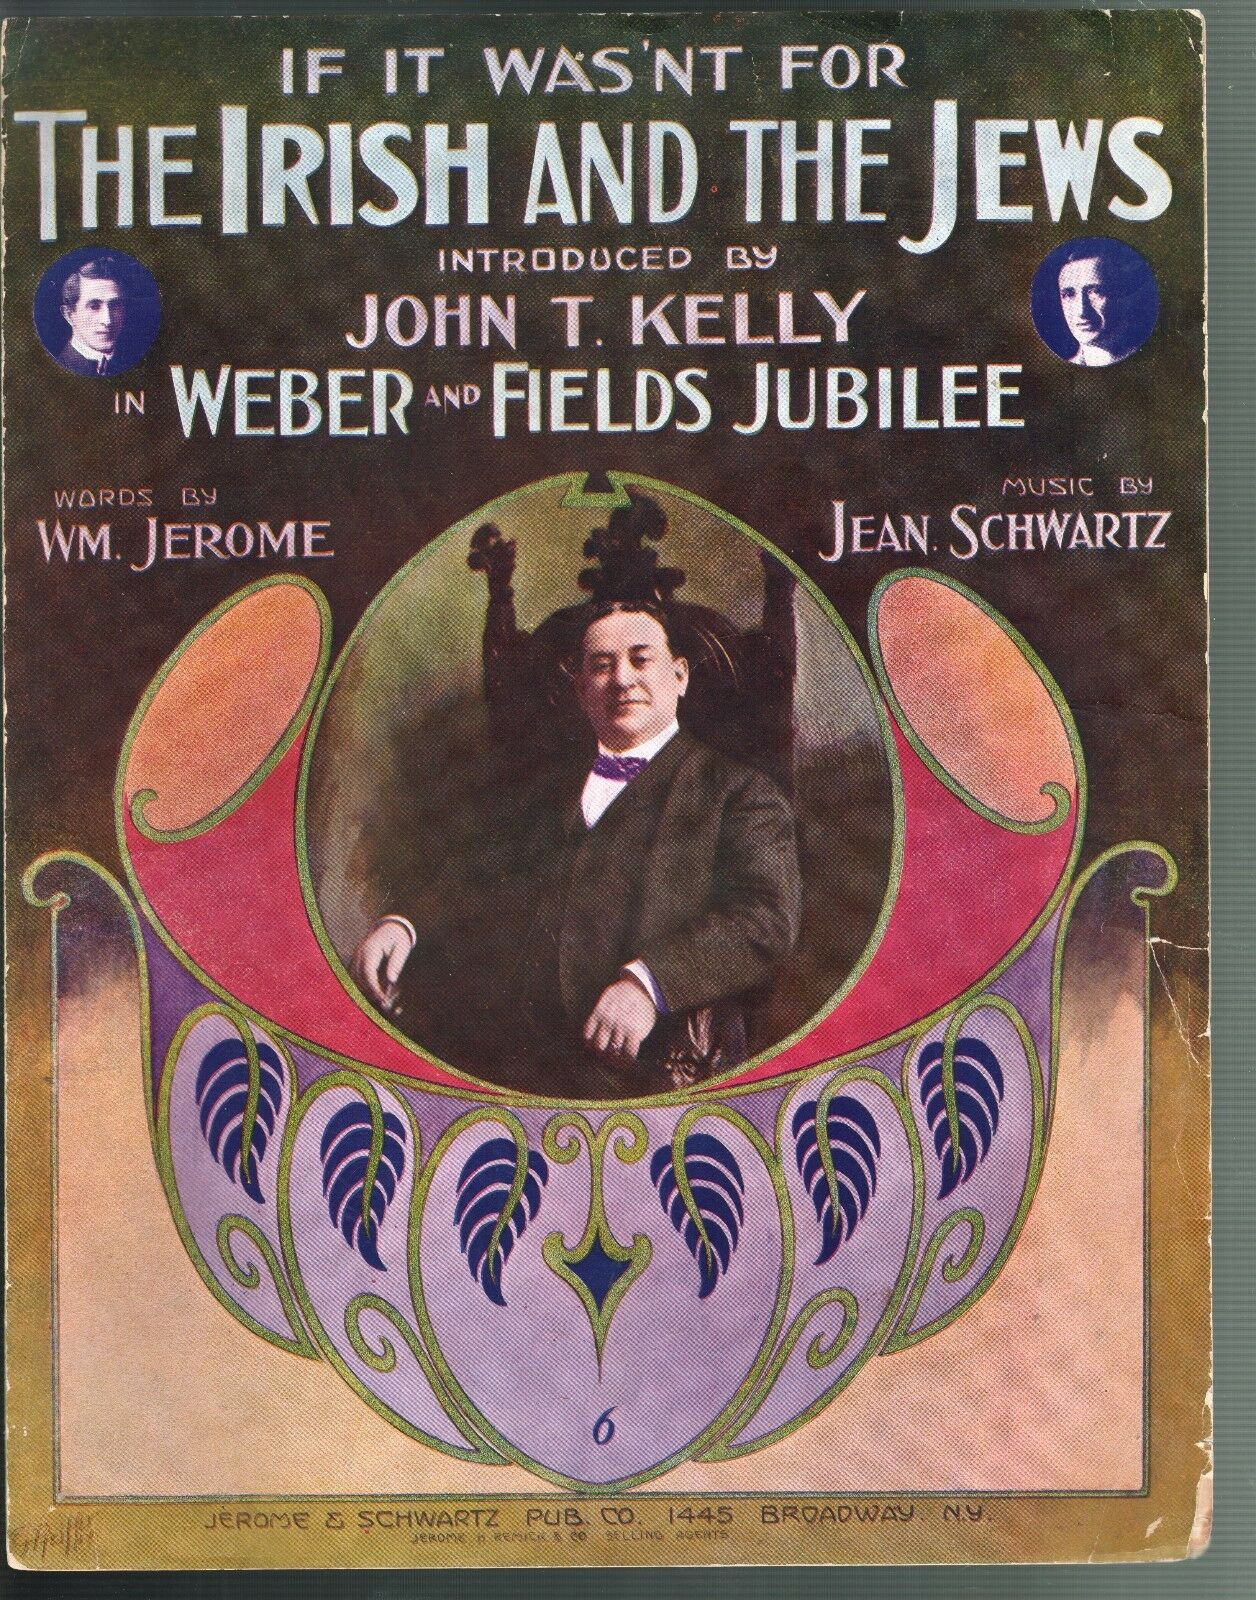 If It Wasn't For the Irish and the Jews 1912 Large Format Sheet Music